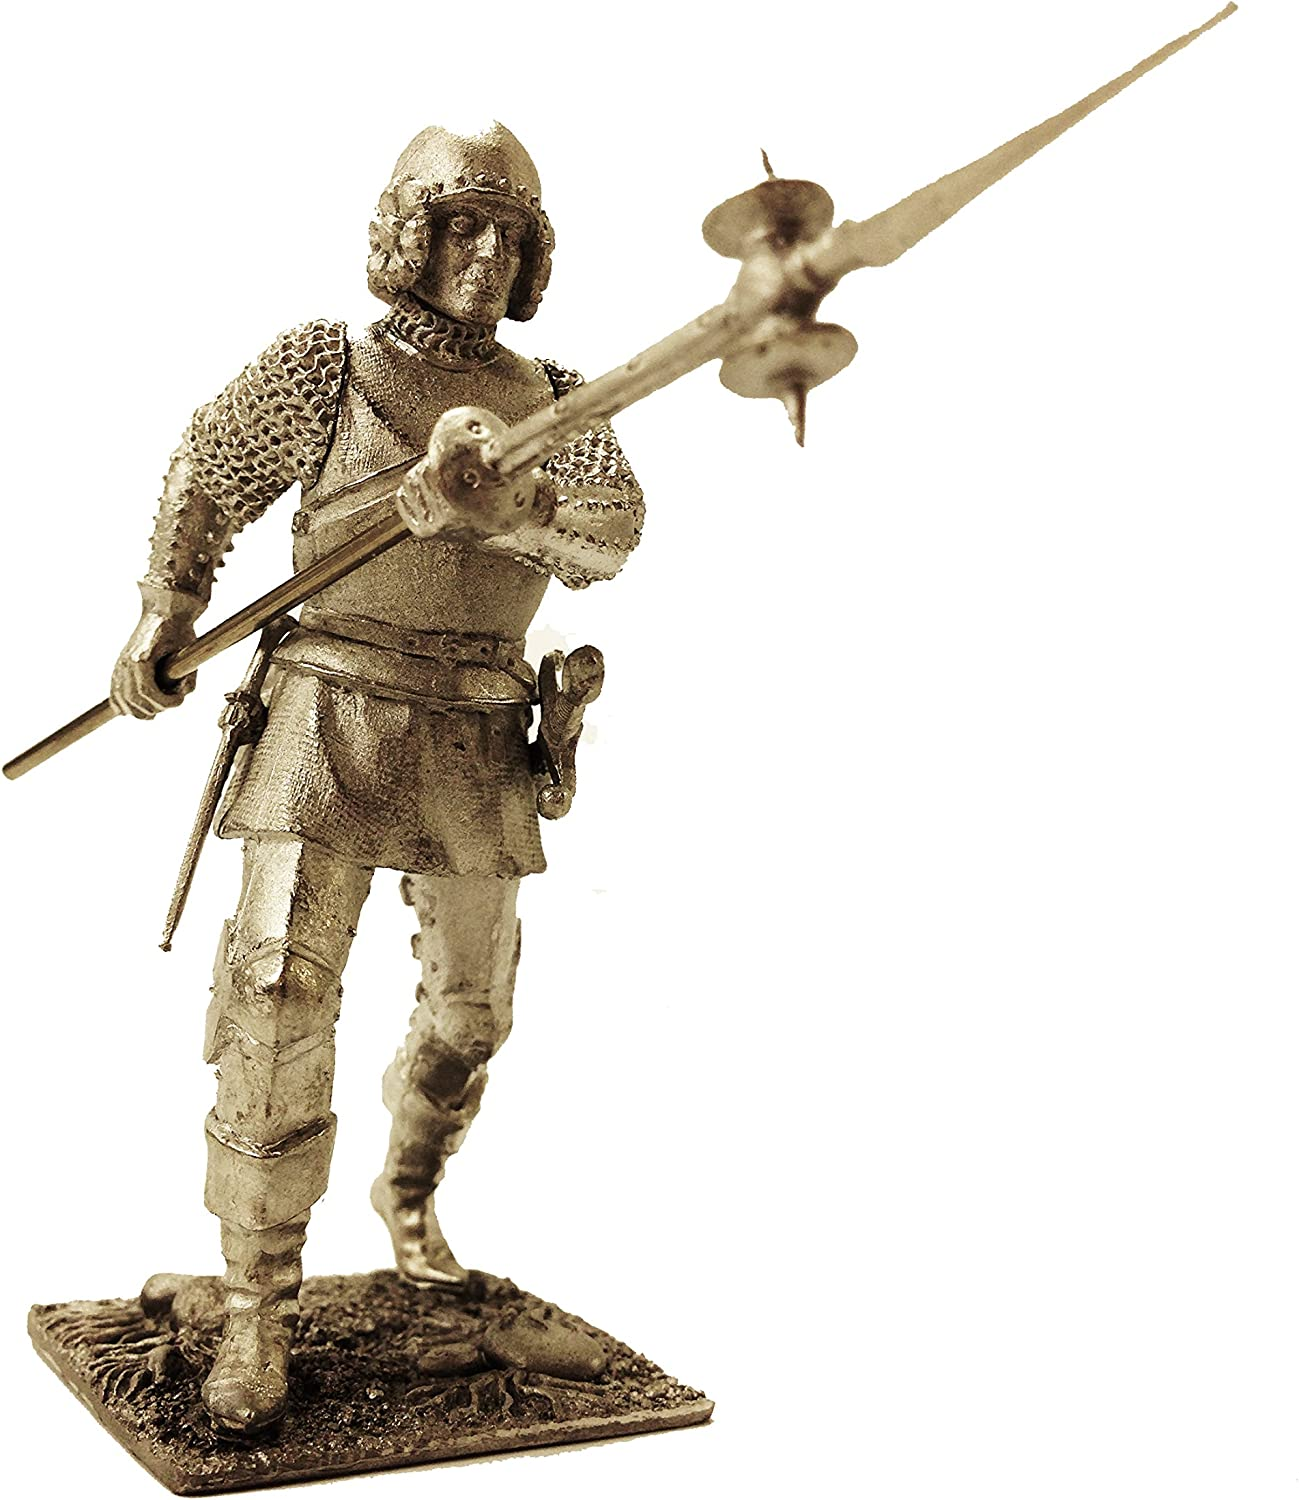 European Infantry 15 Century Mercenary Soldier Tin Metal 54mm Action Figures Toy Soldiers Size 1 32 Scale for Home Décor Accents Collectible Figurines Item  C5345.6